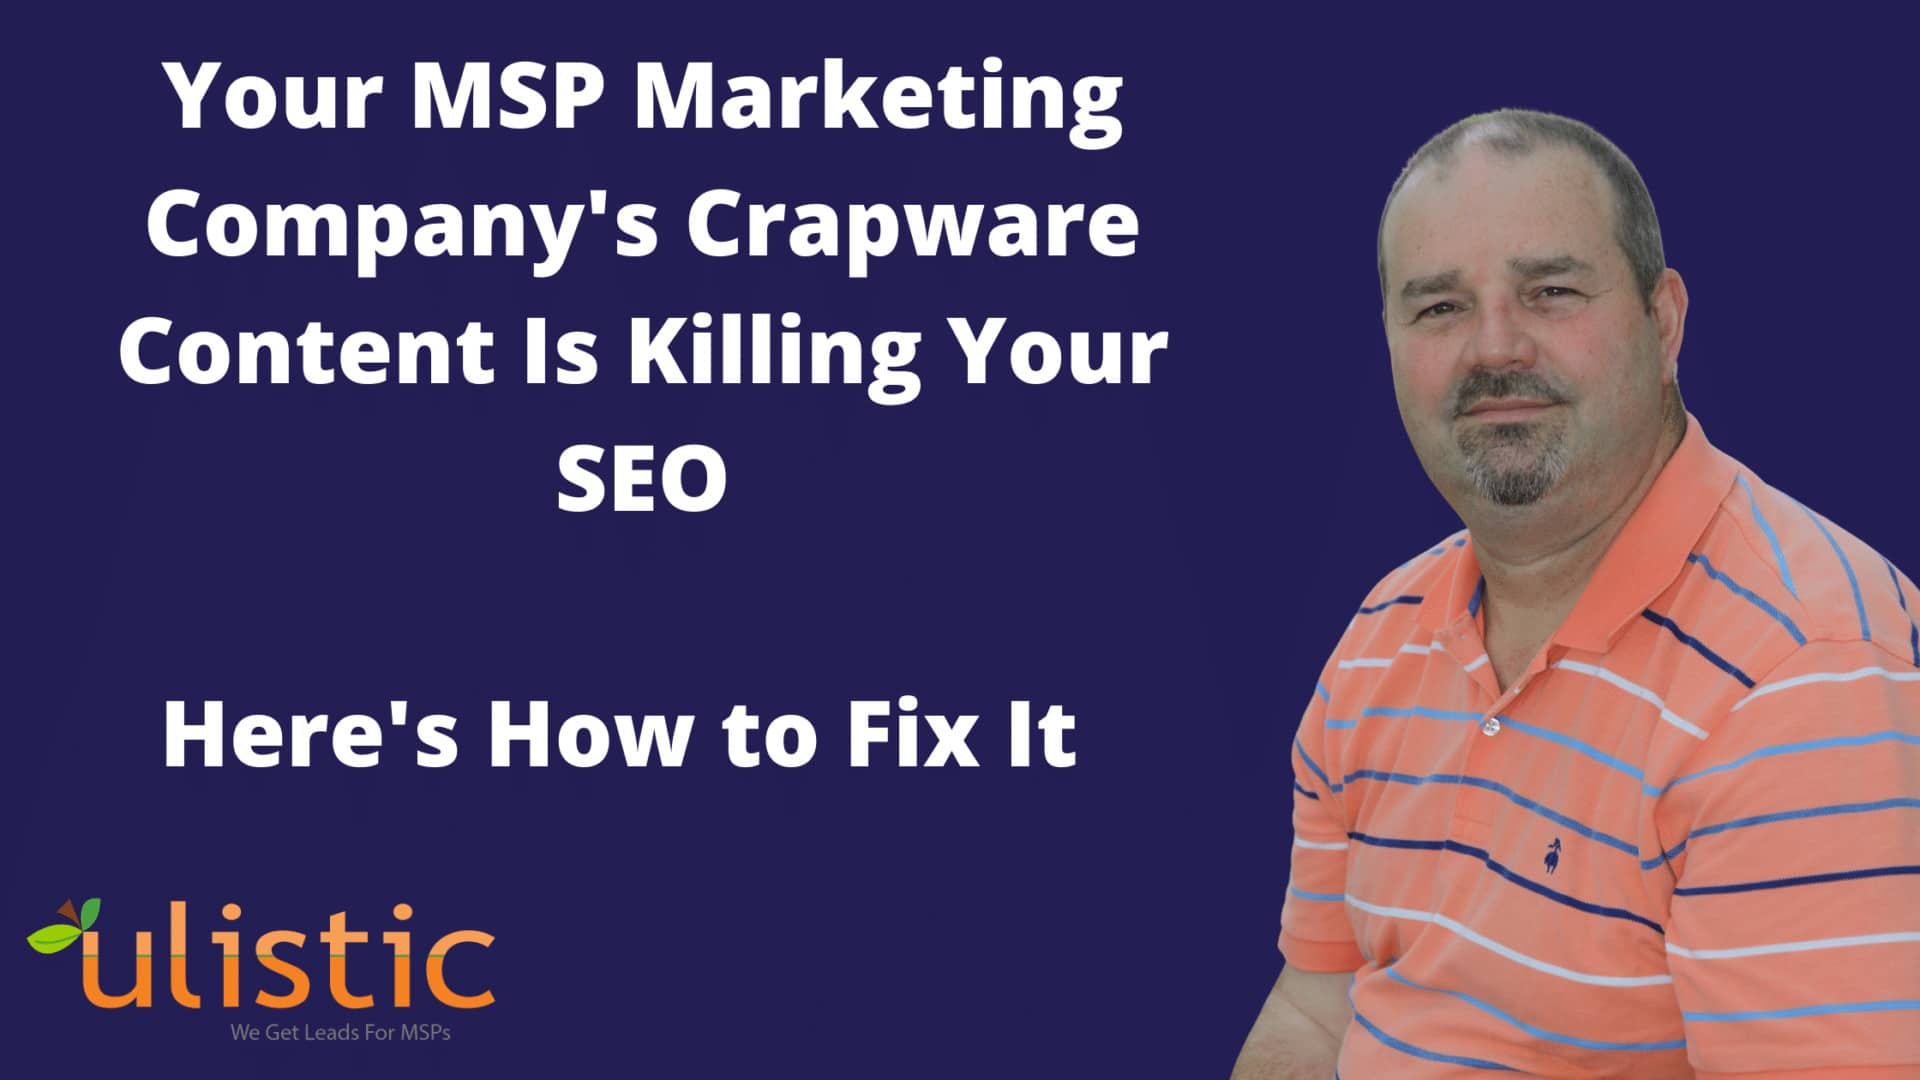 Your MSP Marketing Company's Crapware Content Is Killing Your SEO